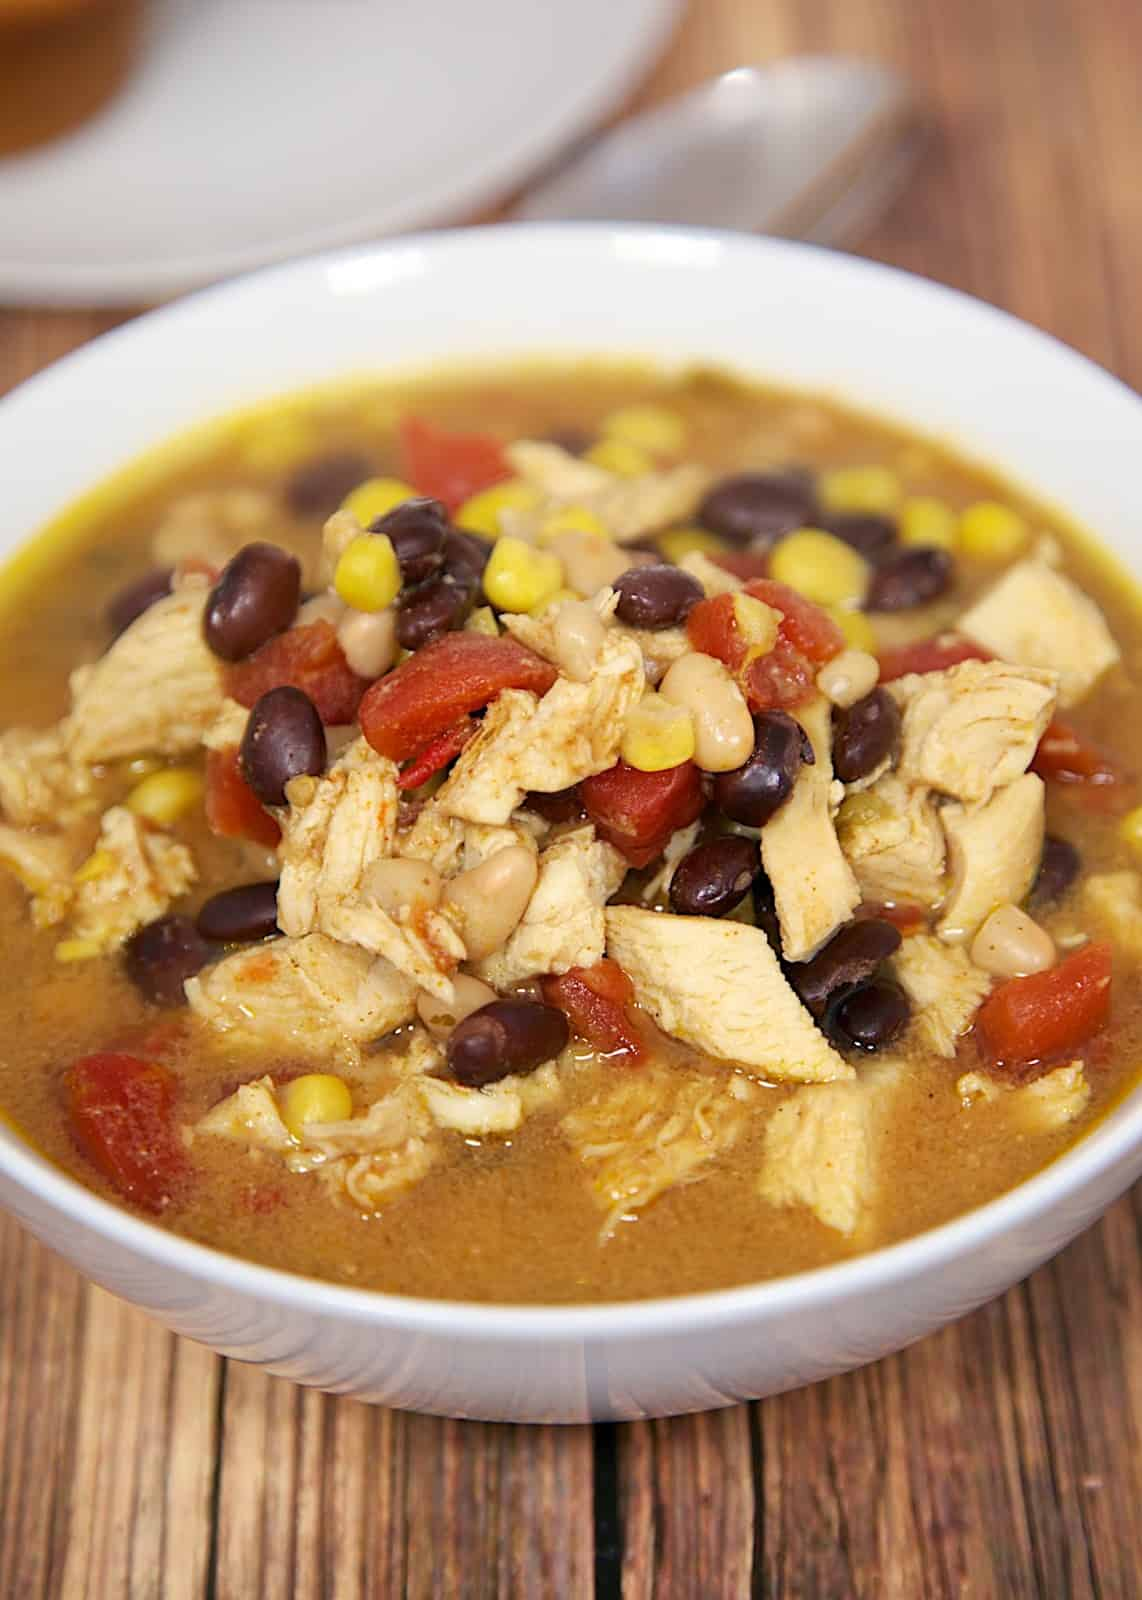 Chicken Taco Soup made in the slow cooker/crock-pot - tastes like the Chicken Tortilla Soup from Chick-fil-a - SO good! Freezes well too!